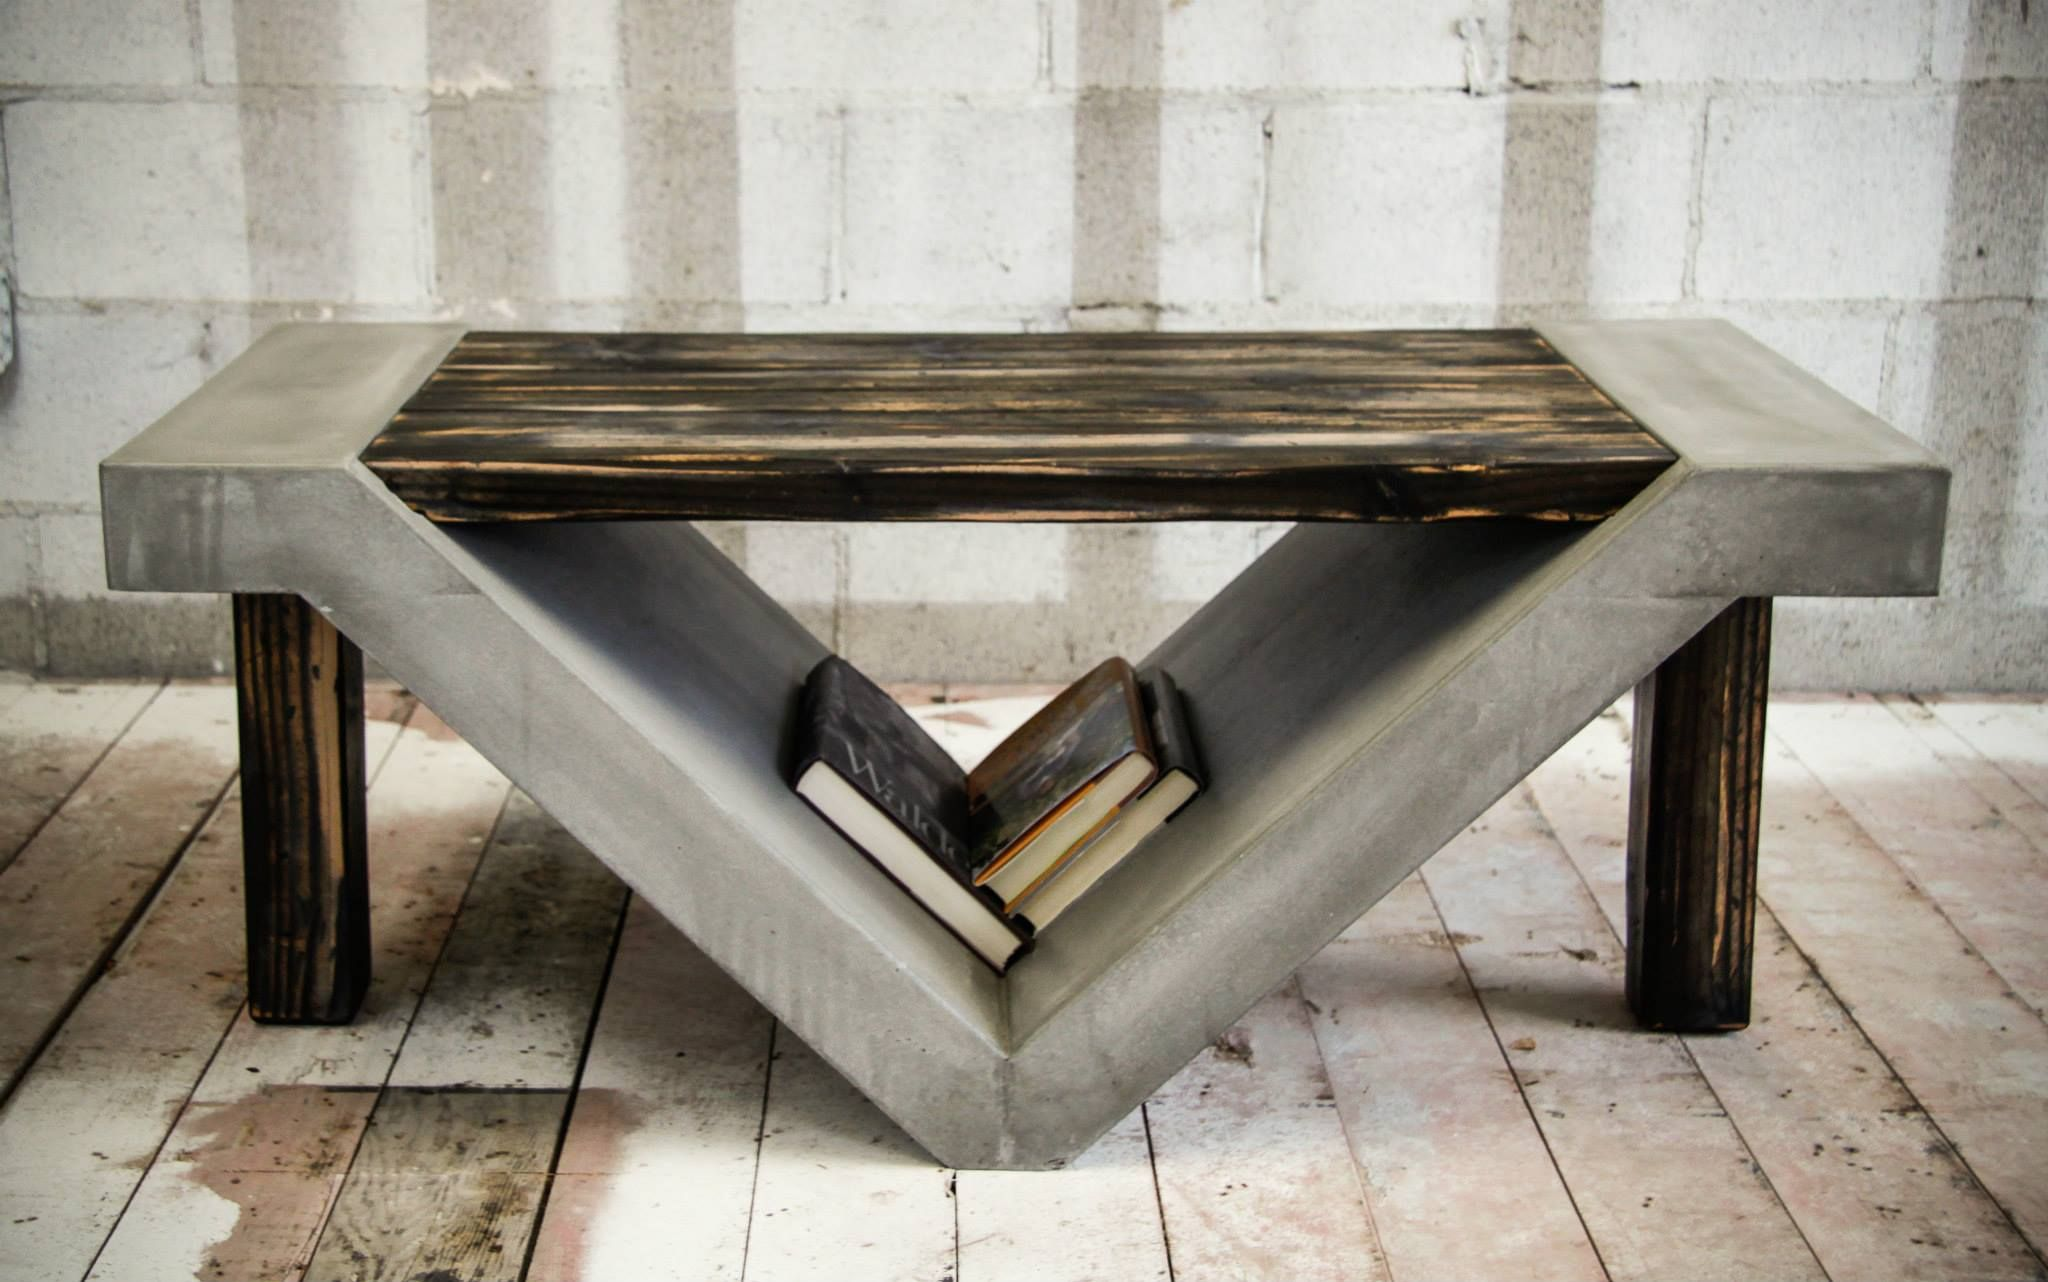 The slanted storage space beneath this table is perfect